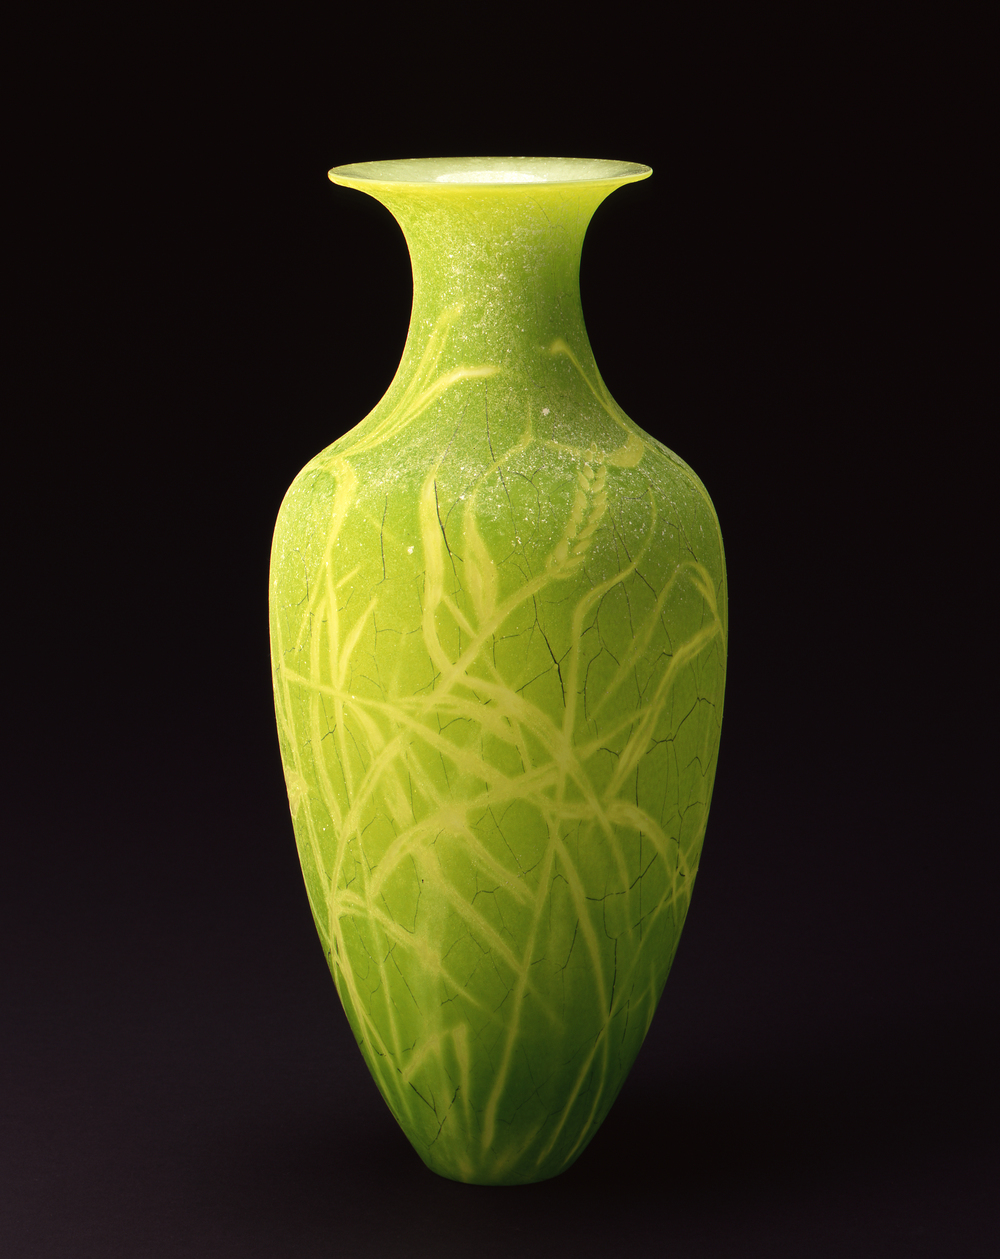 William Morris,  Vase with Wild Grass (Green)  (2004, glass, 18 5/8 x 8 1/2 x 8 1/2 inches), WM.20